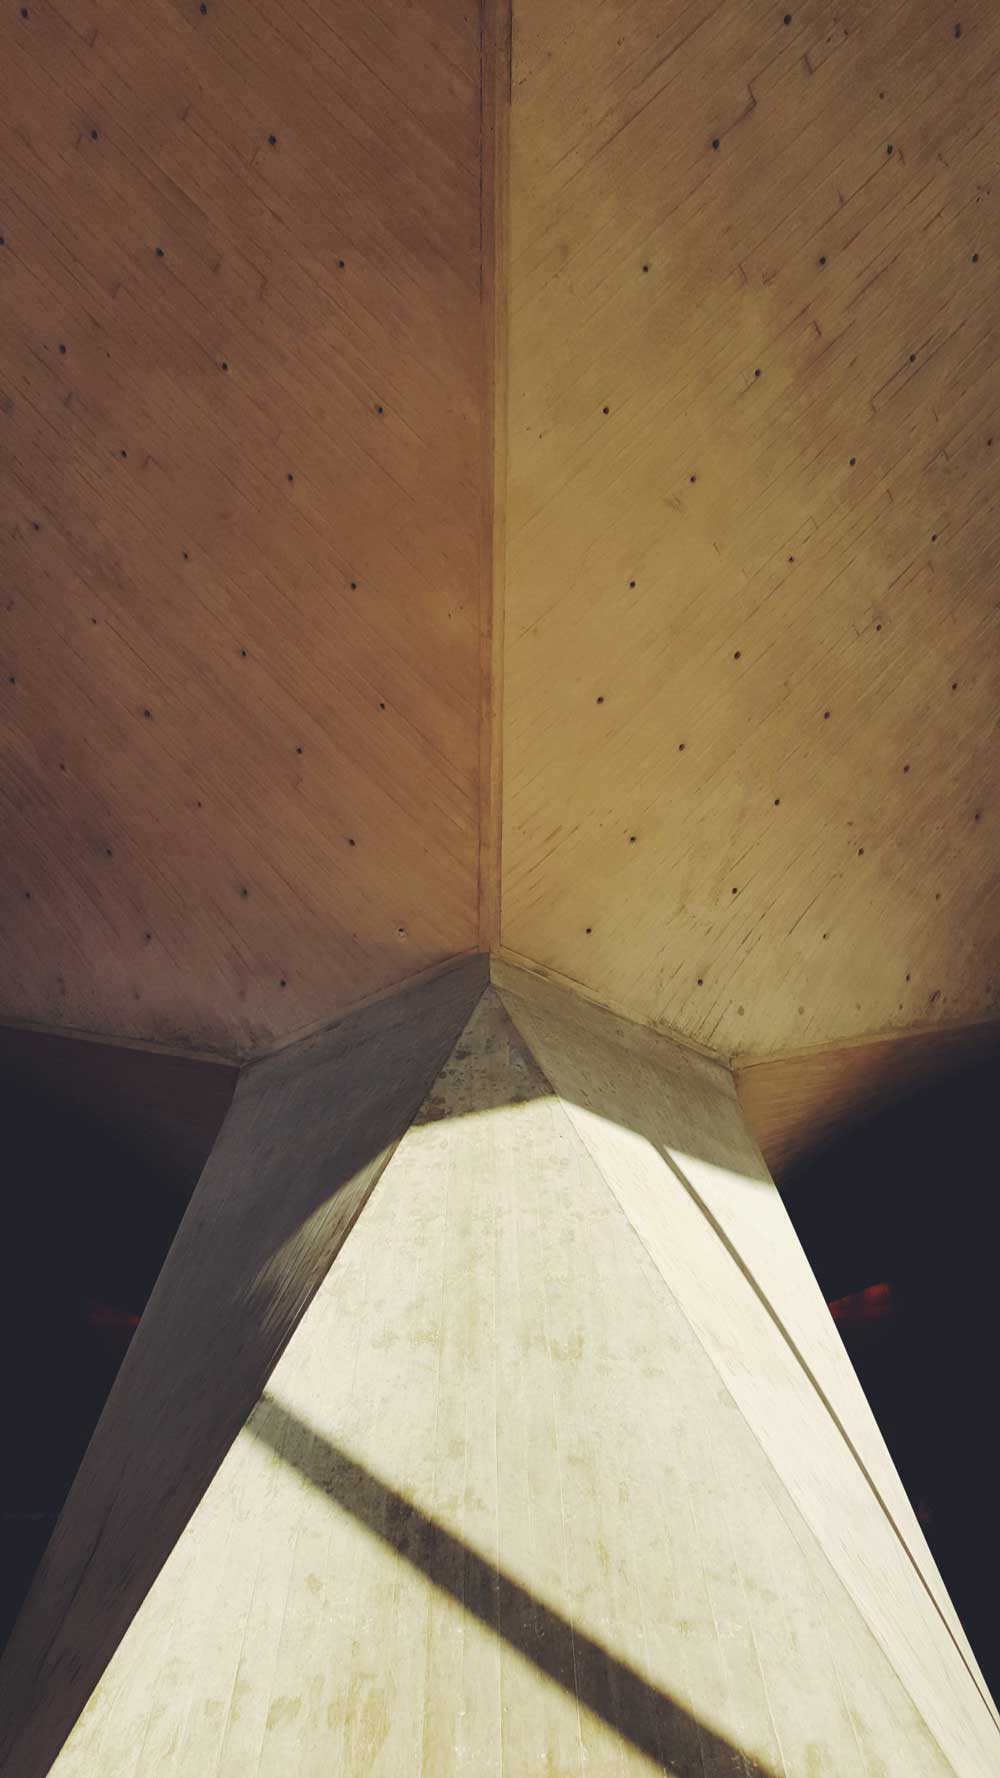 Close-up, abstract view of geometric architecture.